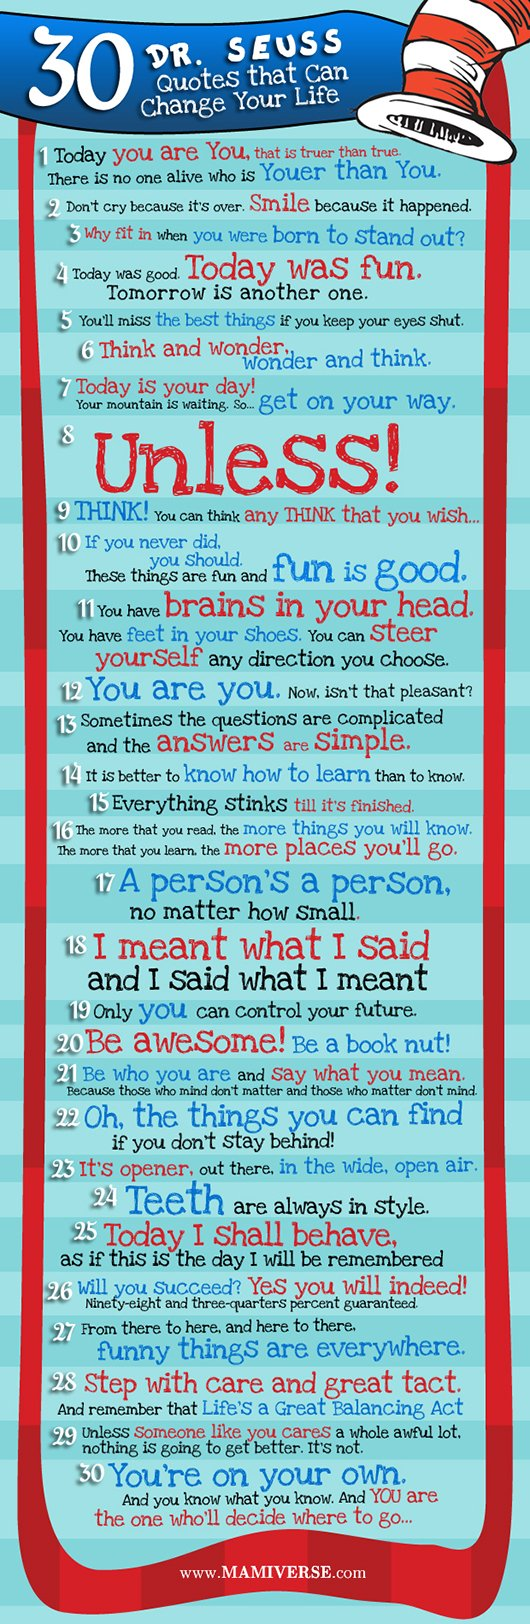 30 Dr. Suess Quotes that Can Change Your Life